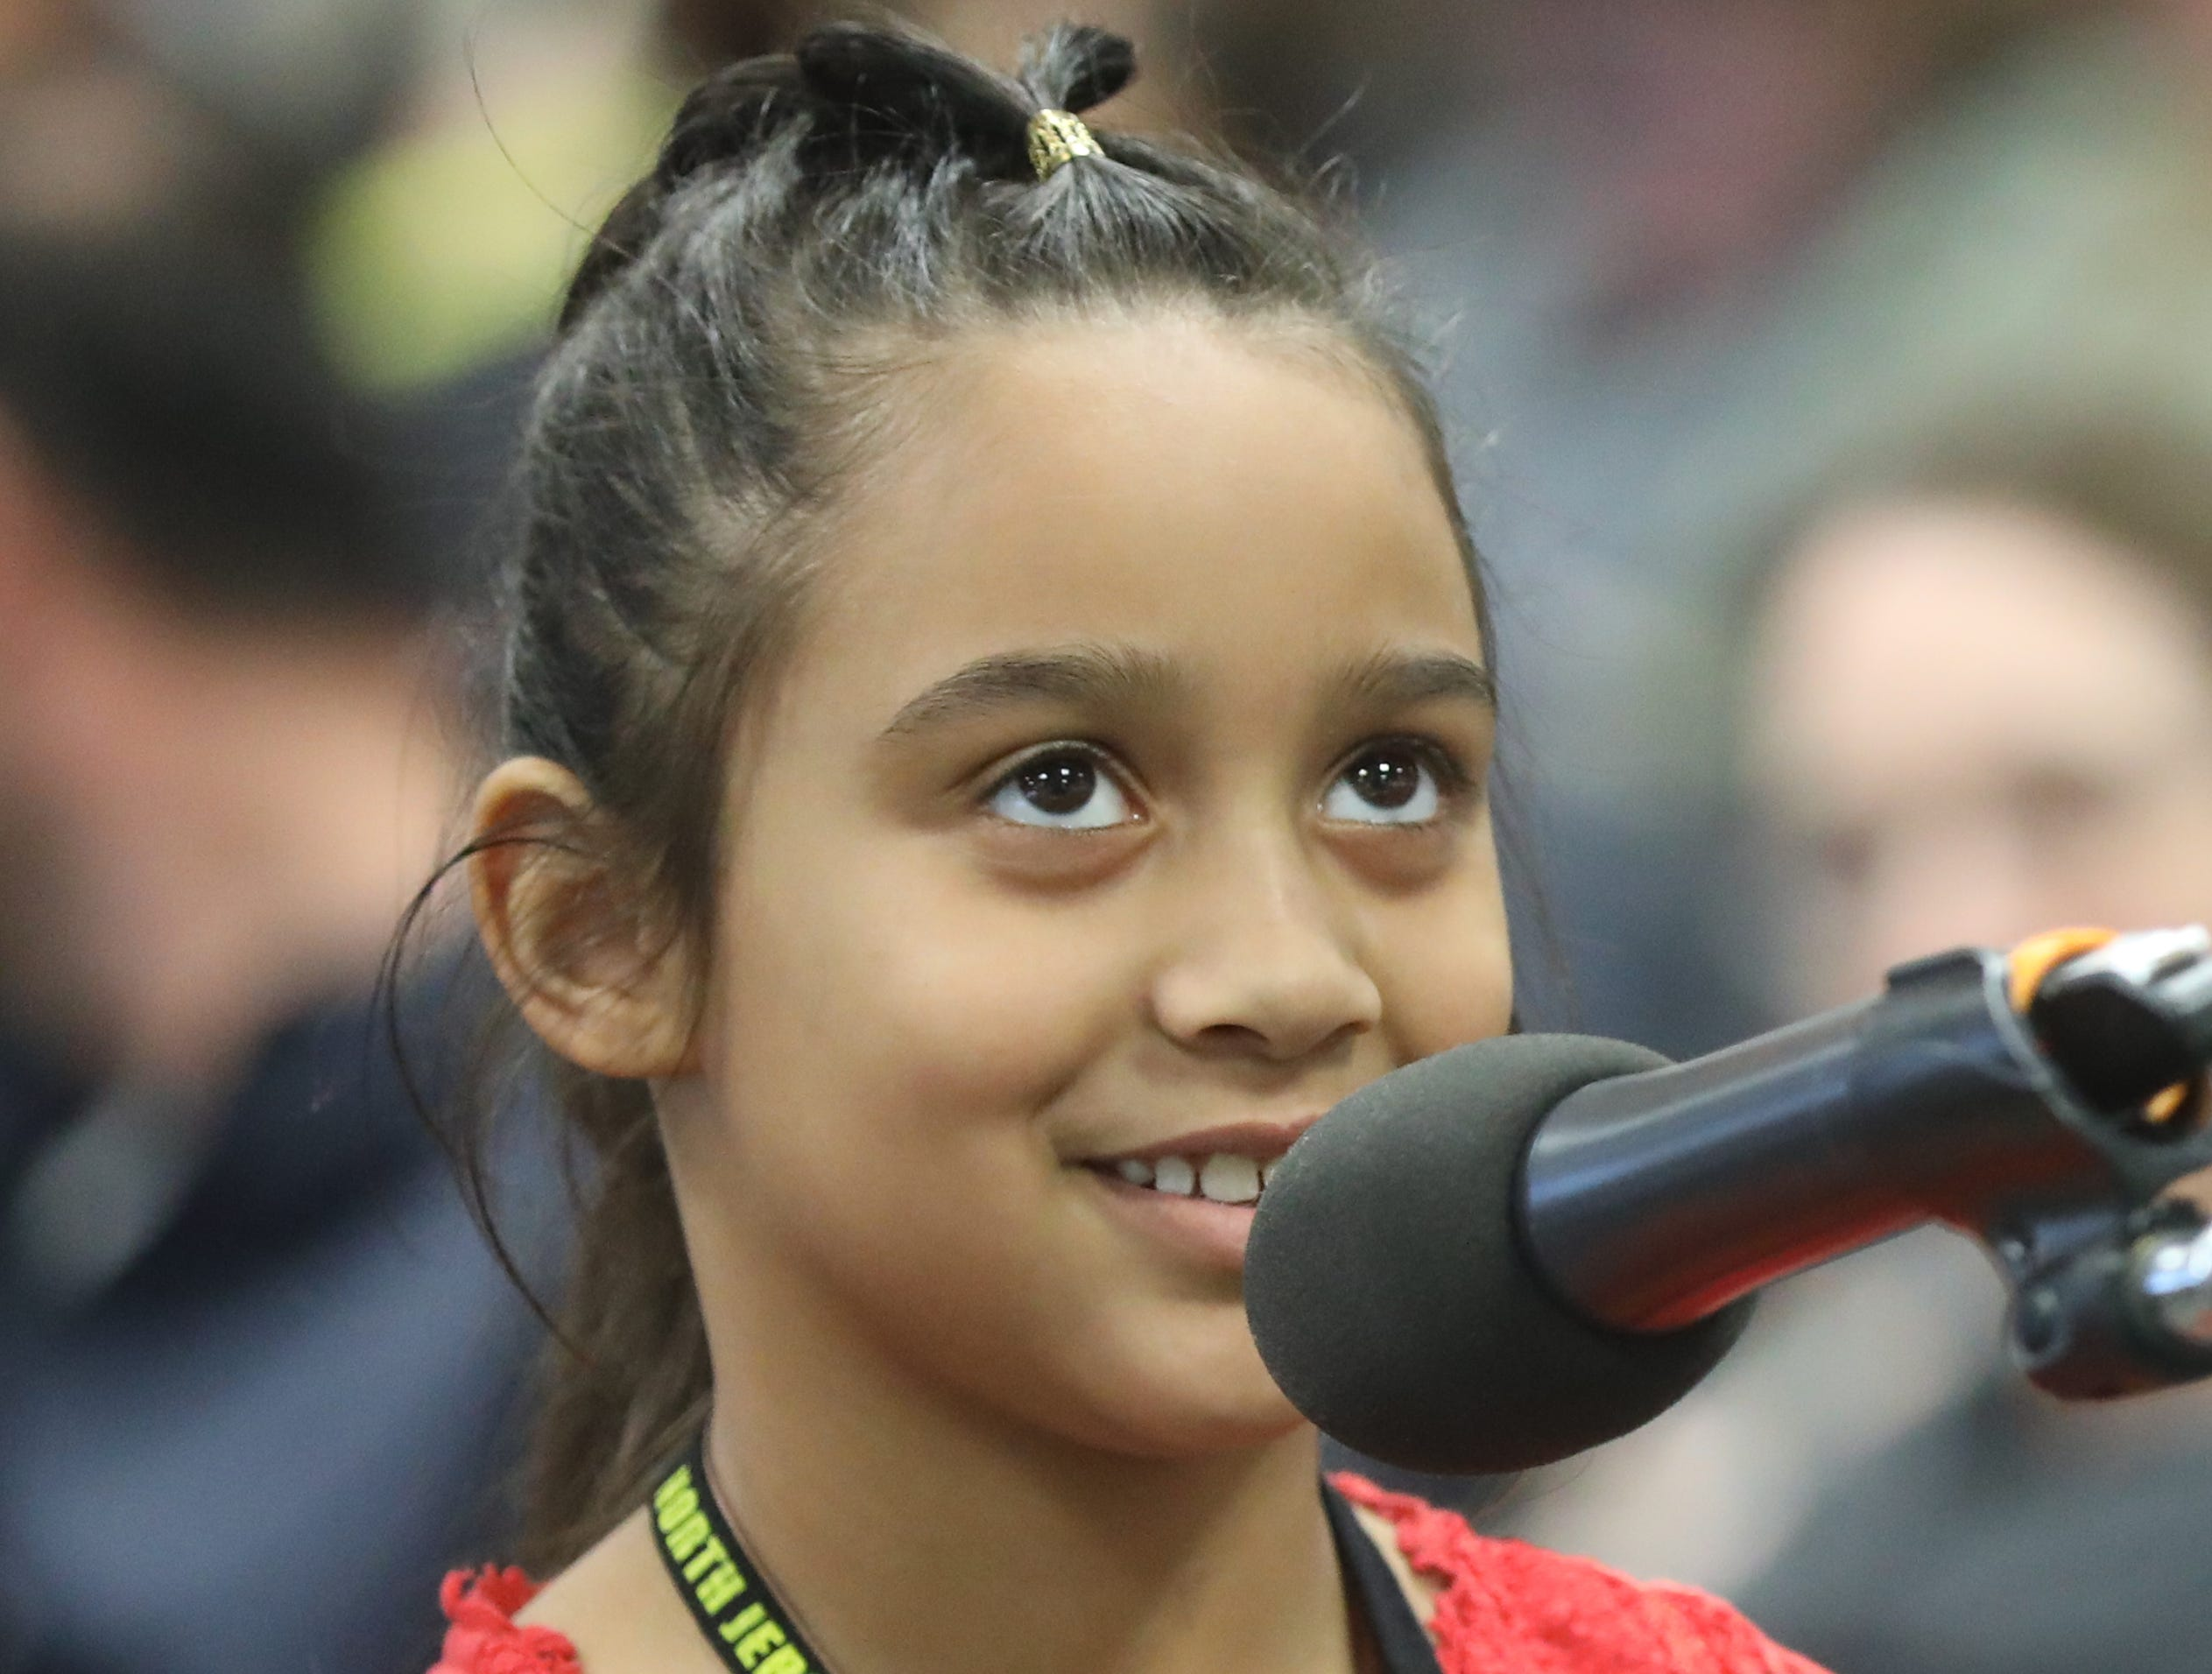 Kristela Saraci, of Teaneck, competes in the first round of the 2019 North Jersey Spelling Bee, in Paramus. Thursday, March 14, 2019